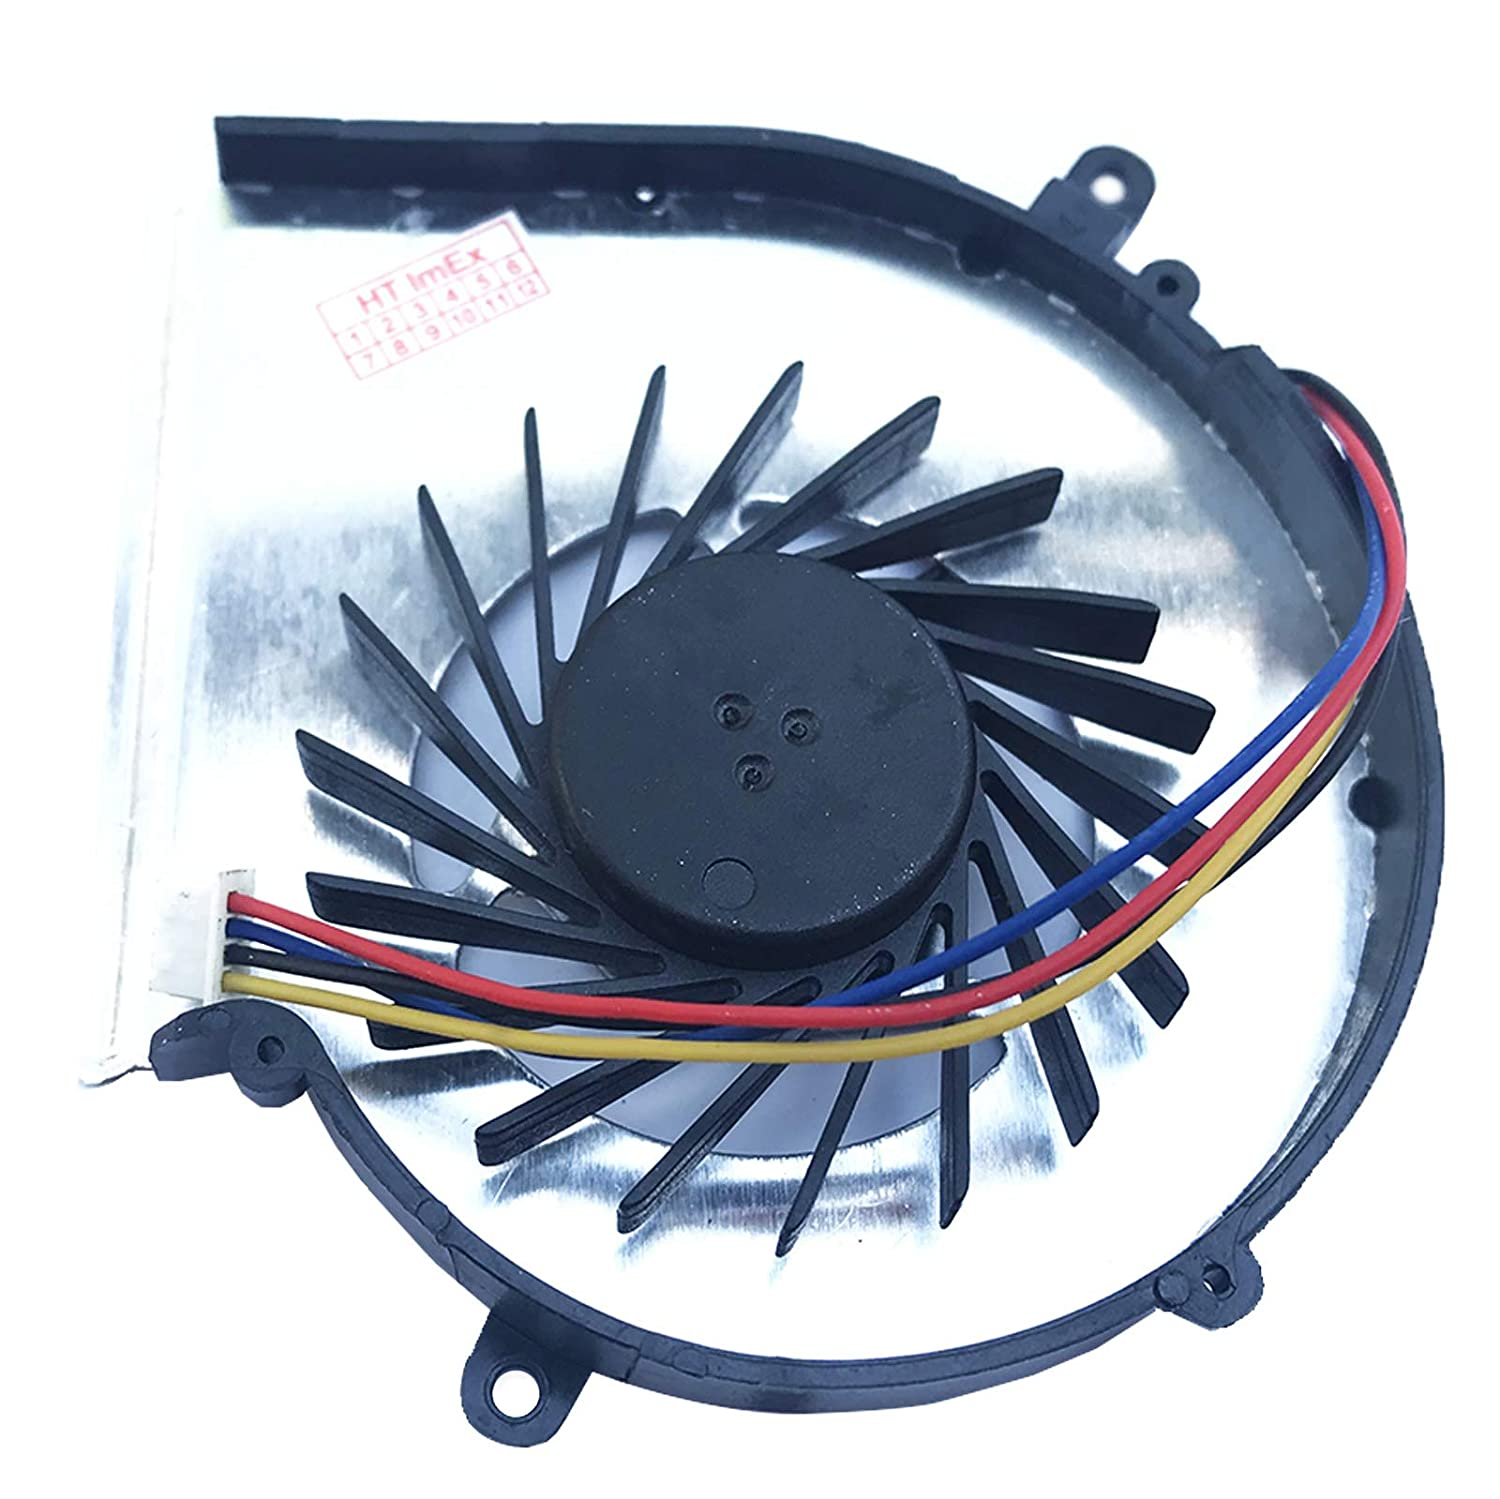 GPU 4 Pin Version Fan Cooler Compatible with MSI MSI PE70 MS-1795 MS-1799 GE72MVR 7RG GE72 2QF MSI PE70-6QE MS-1791 GL62M 7RDX MS-16J9 MS-179C GL72 7RDX MSI PE70-2QE MSI GE62 2QC